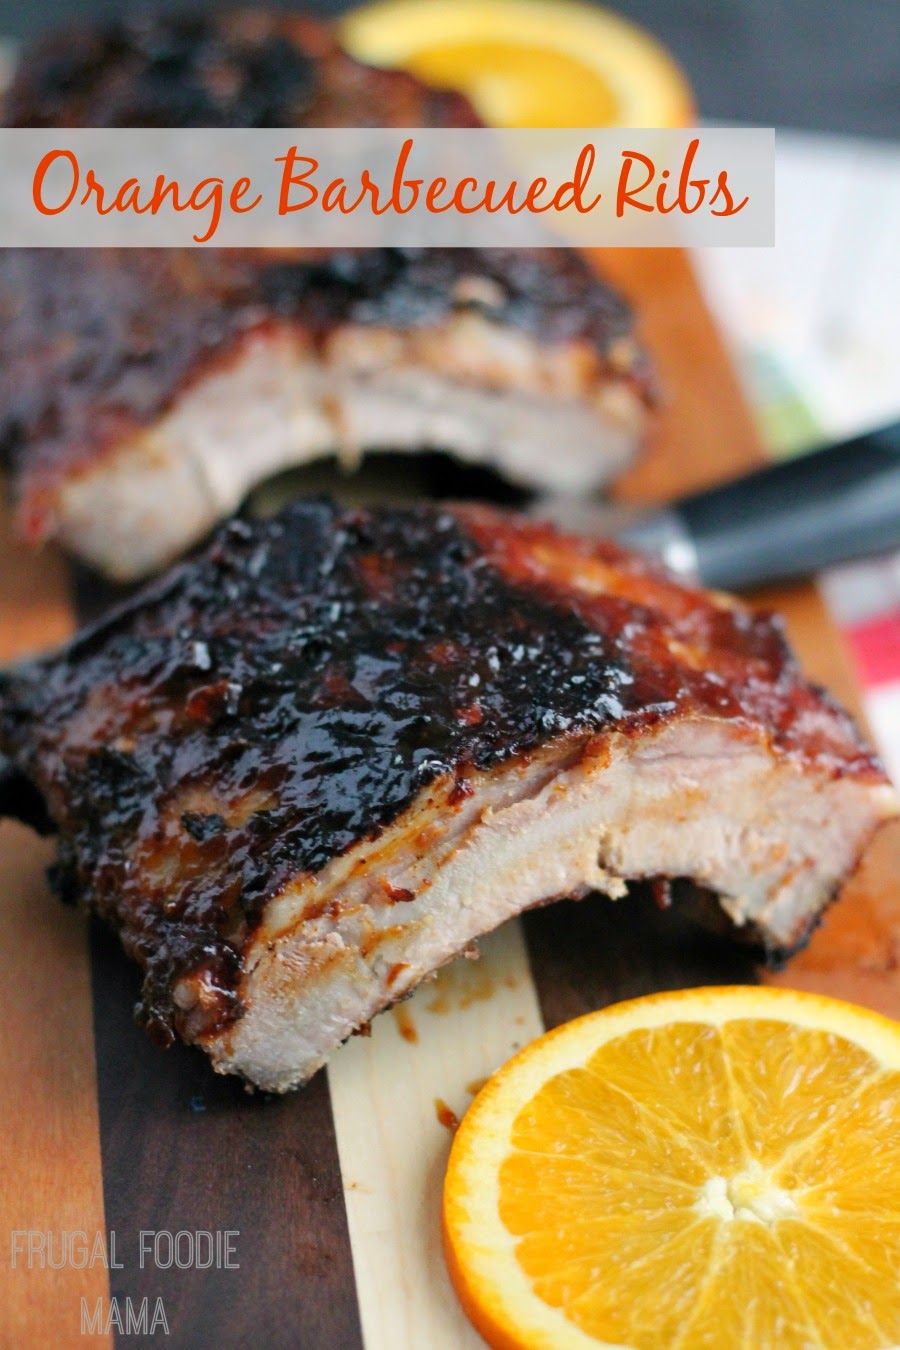 These tender Orange Barbecued Ribs are made sweet & spicy with fresh orange juice, zest, red pepper, & bold Kraft barbecue sauce. #Evergriller #sponsored